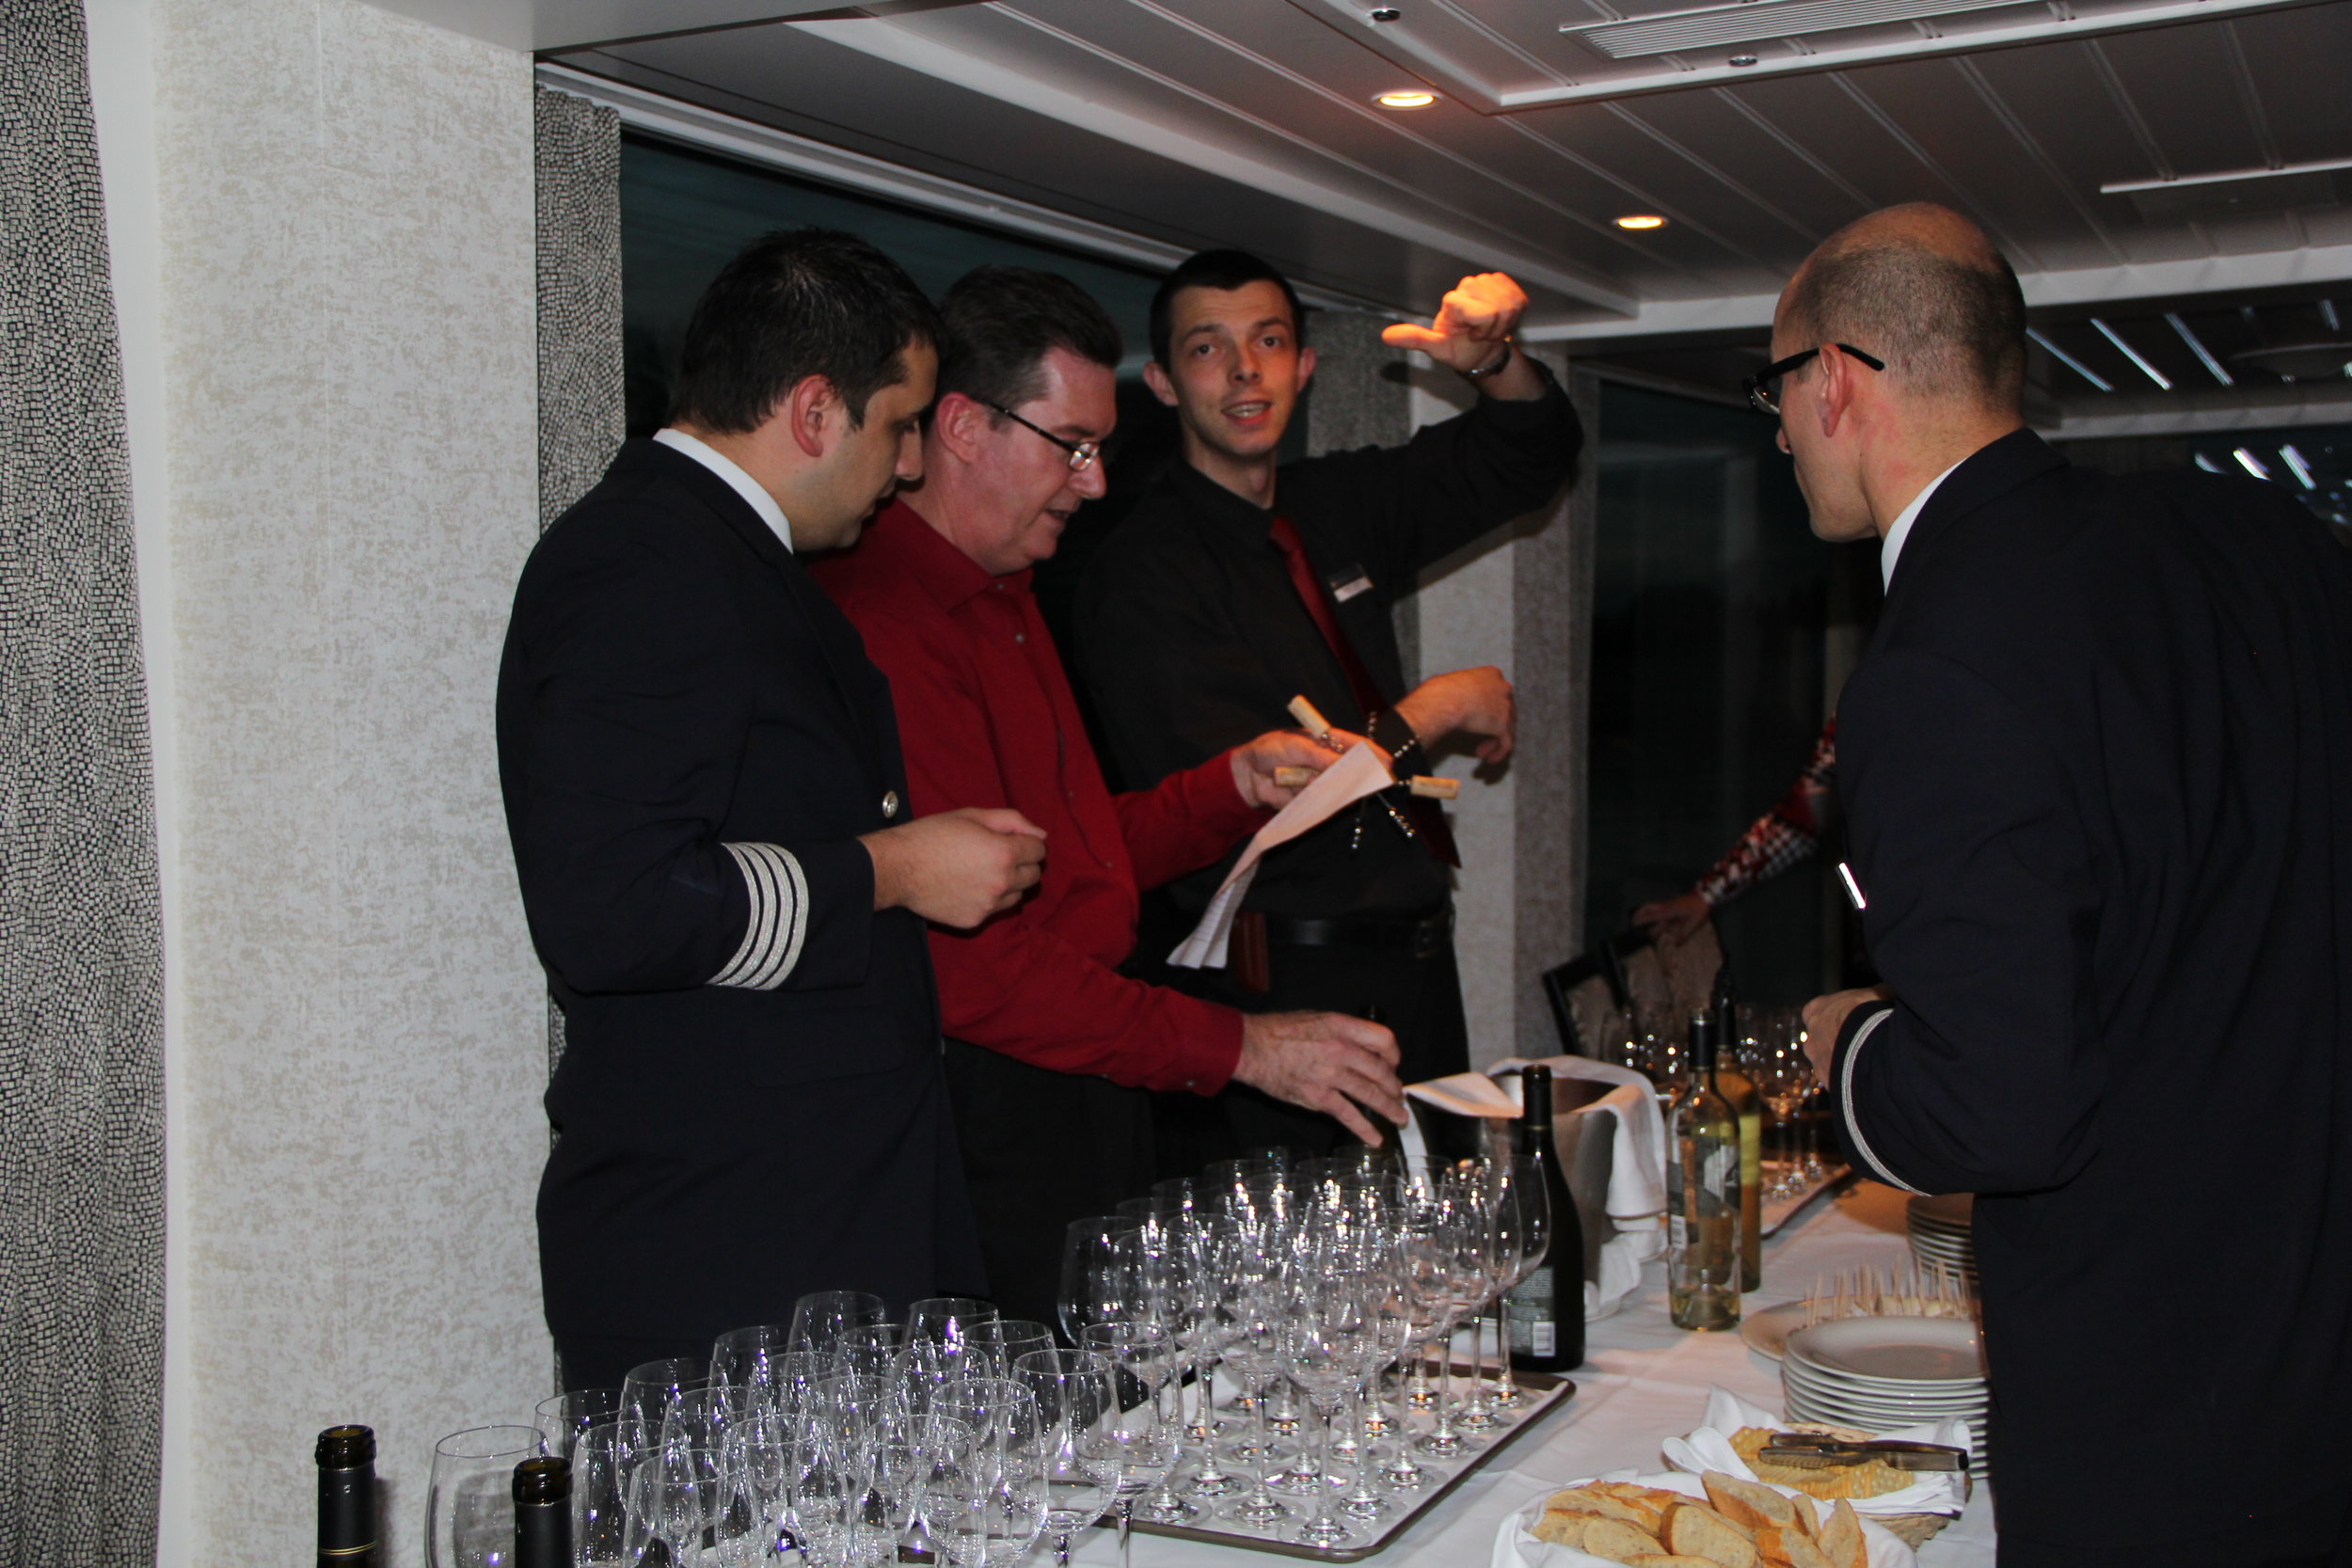 Mark (our friend & wine host) & crew prepare for a wine tasting on the AmaDagio 2014 on wine themed cruise